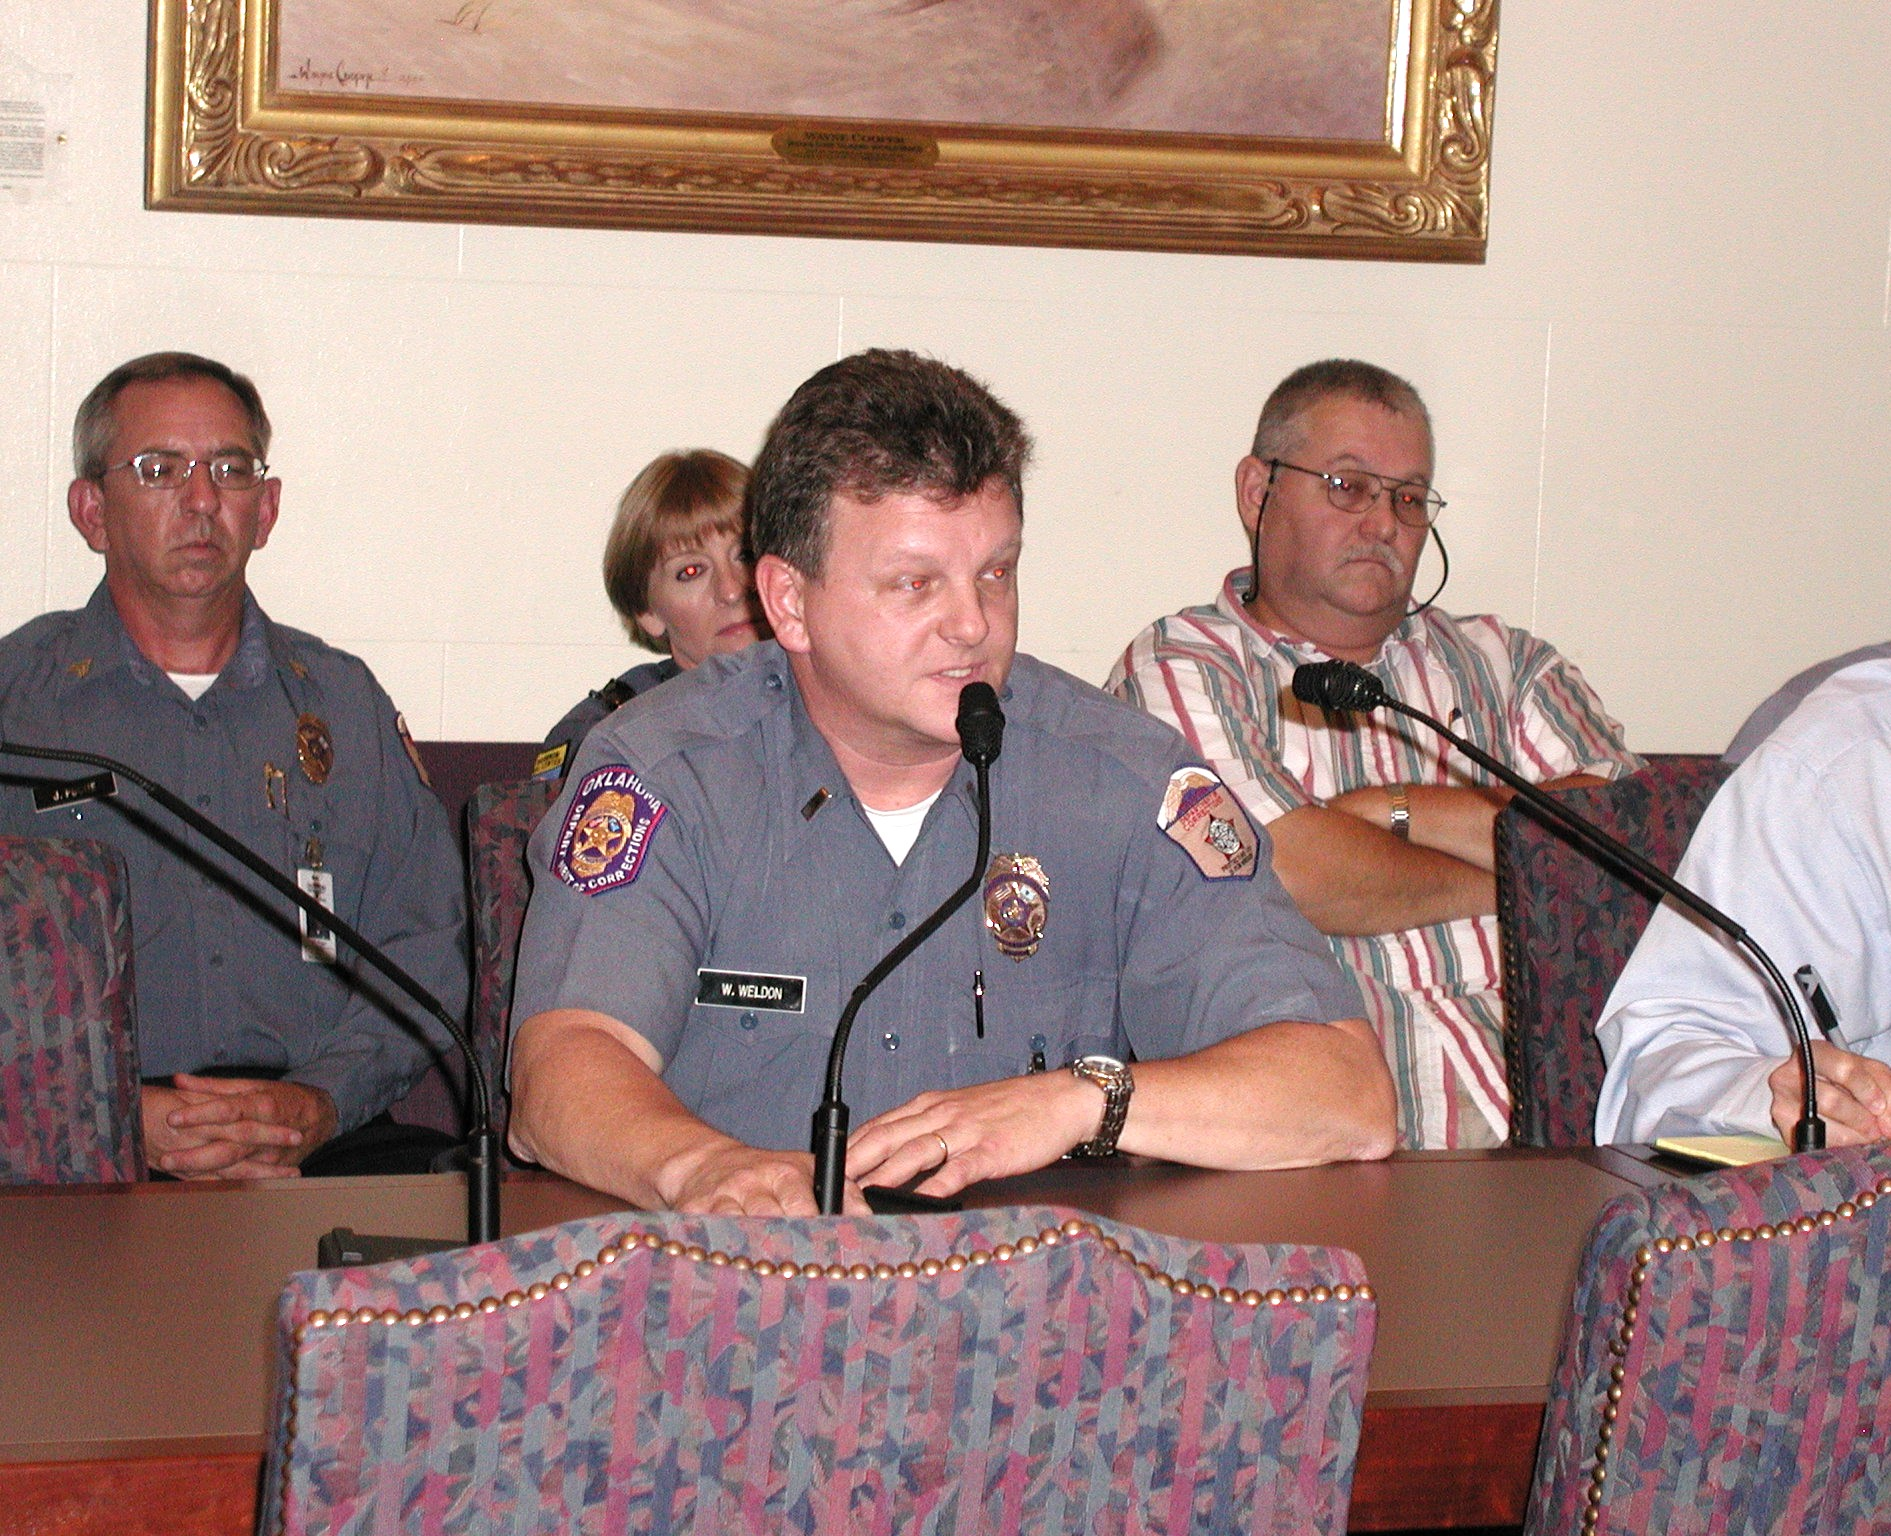 Lt. William Weldon from Joseph Harpe Correctional Facility testifies before the Senate Appropriations Subcommittee on Public Safety and Judiciary.